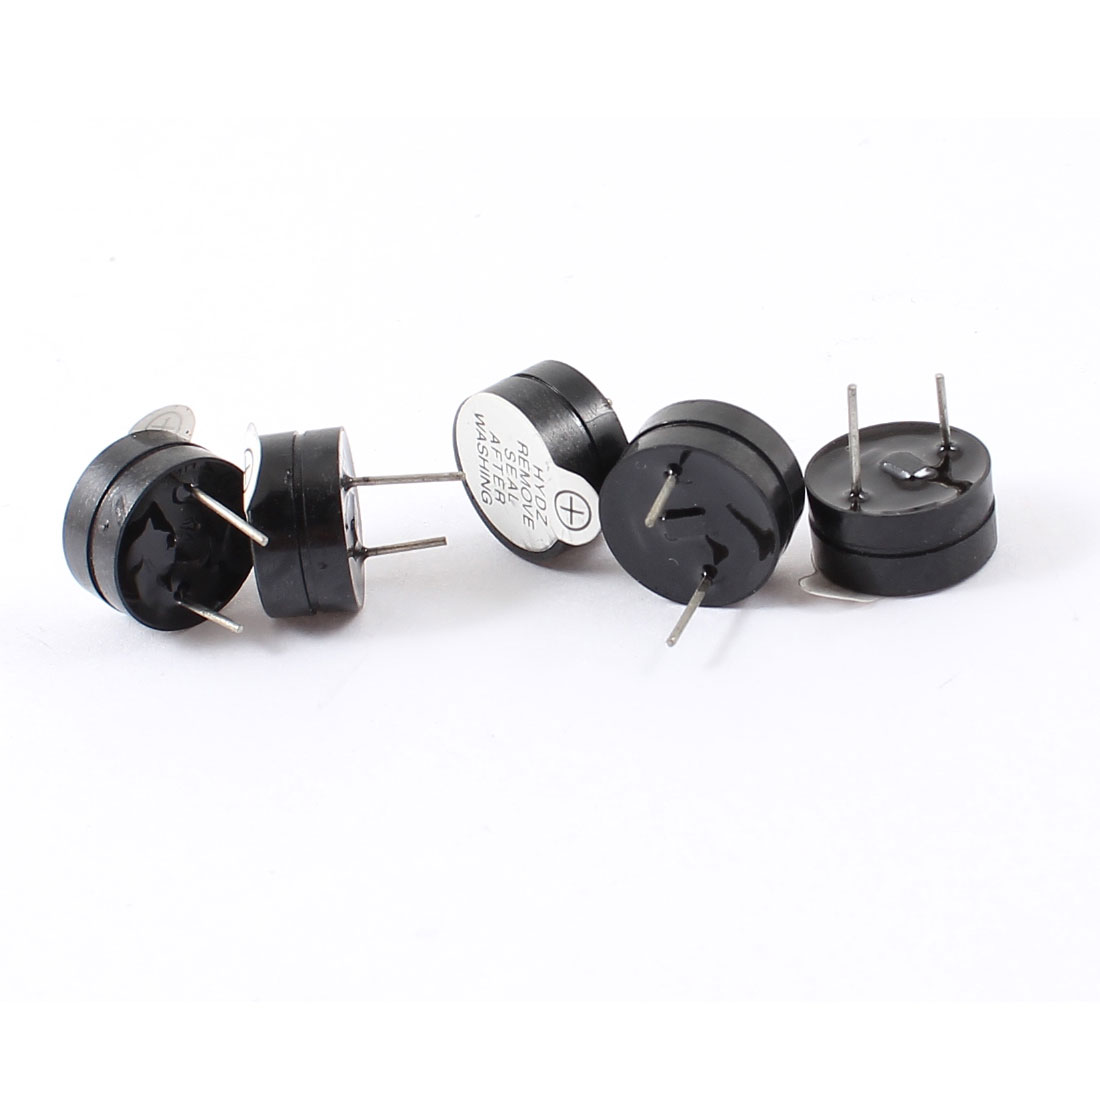 5pcs DC 12V 30mA Industrial Electronic Continuous Sound Buzzer Black 12x6.5mm